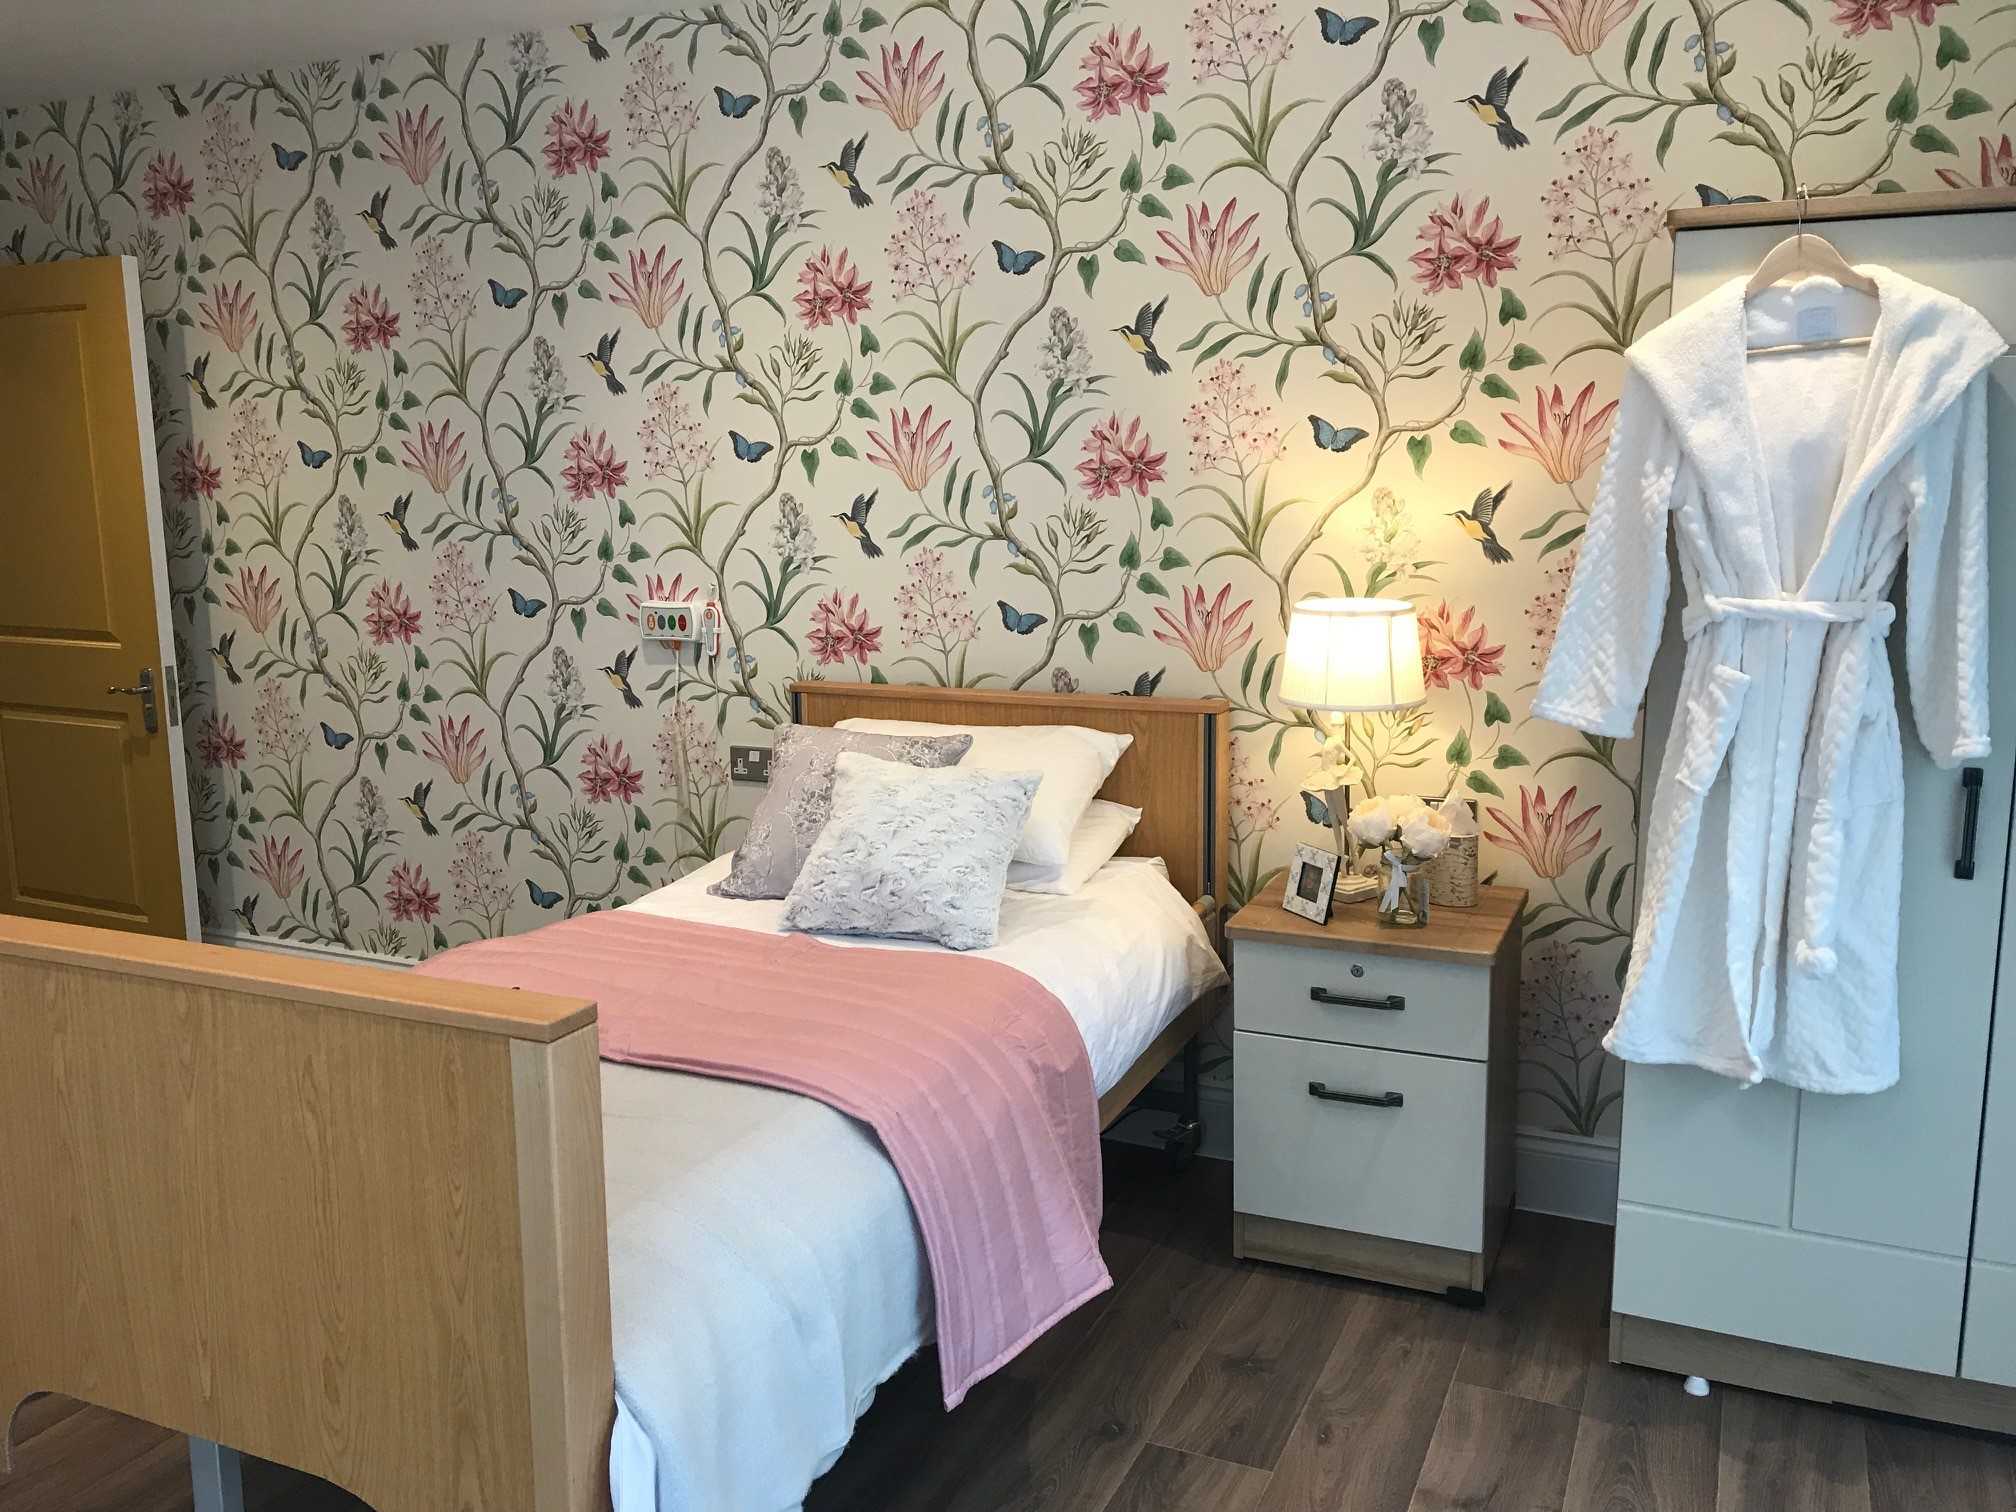 Oakdale care home in Poole to unveil show suite to public